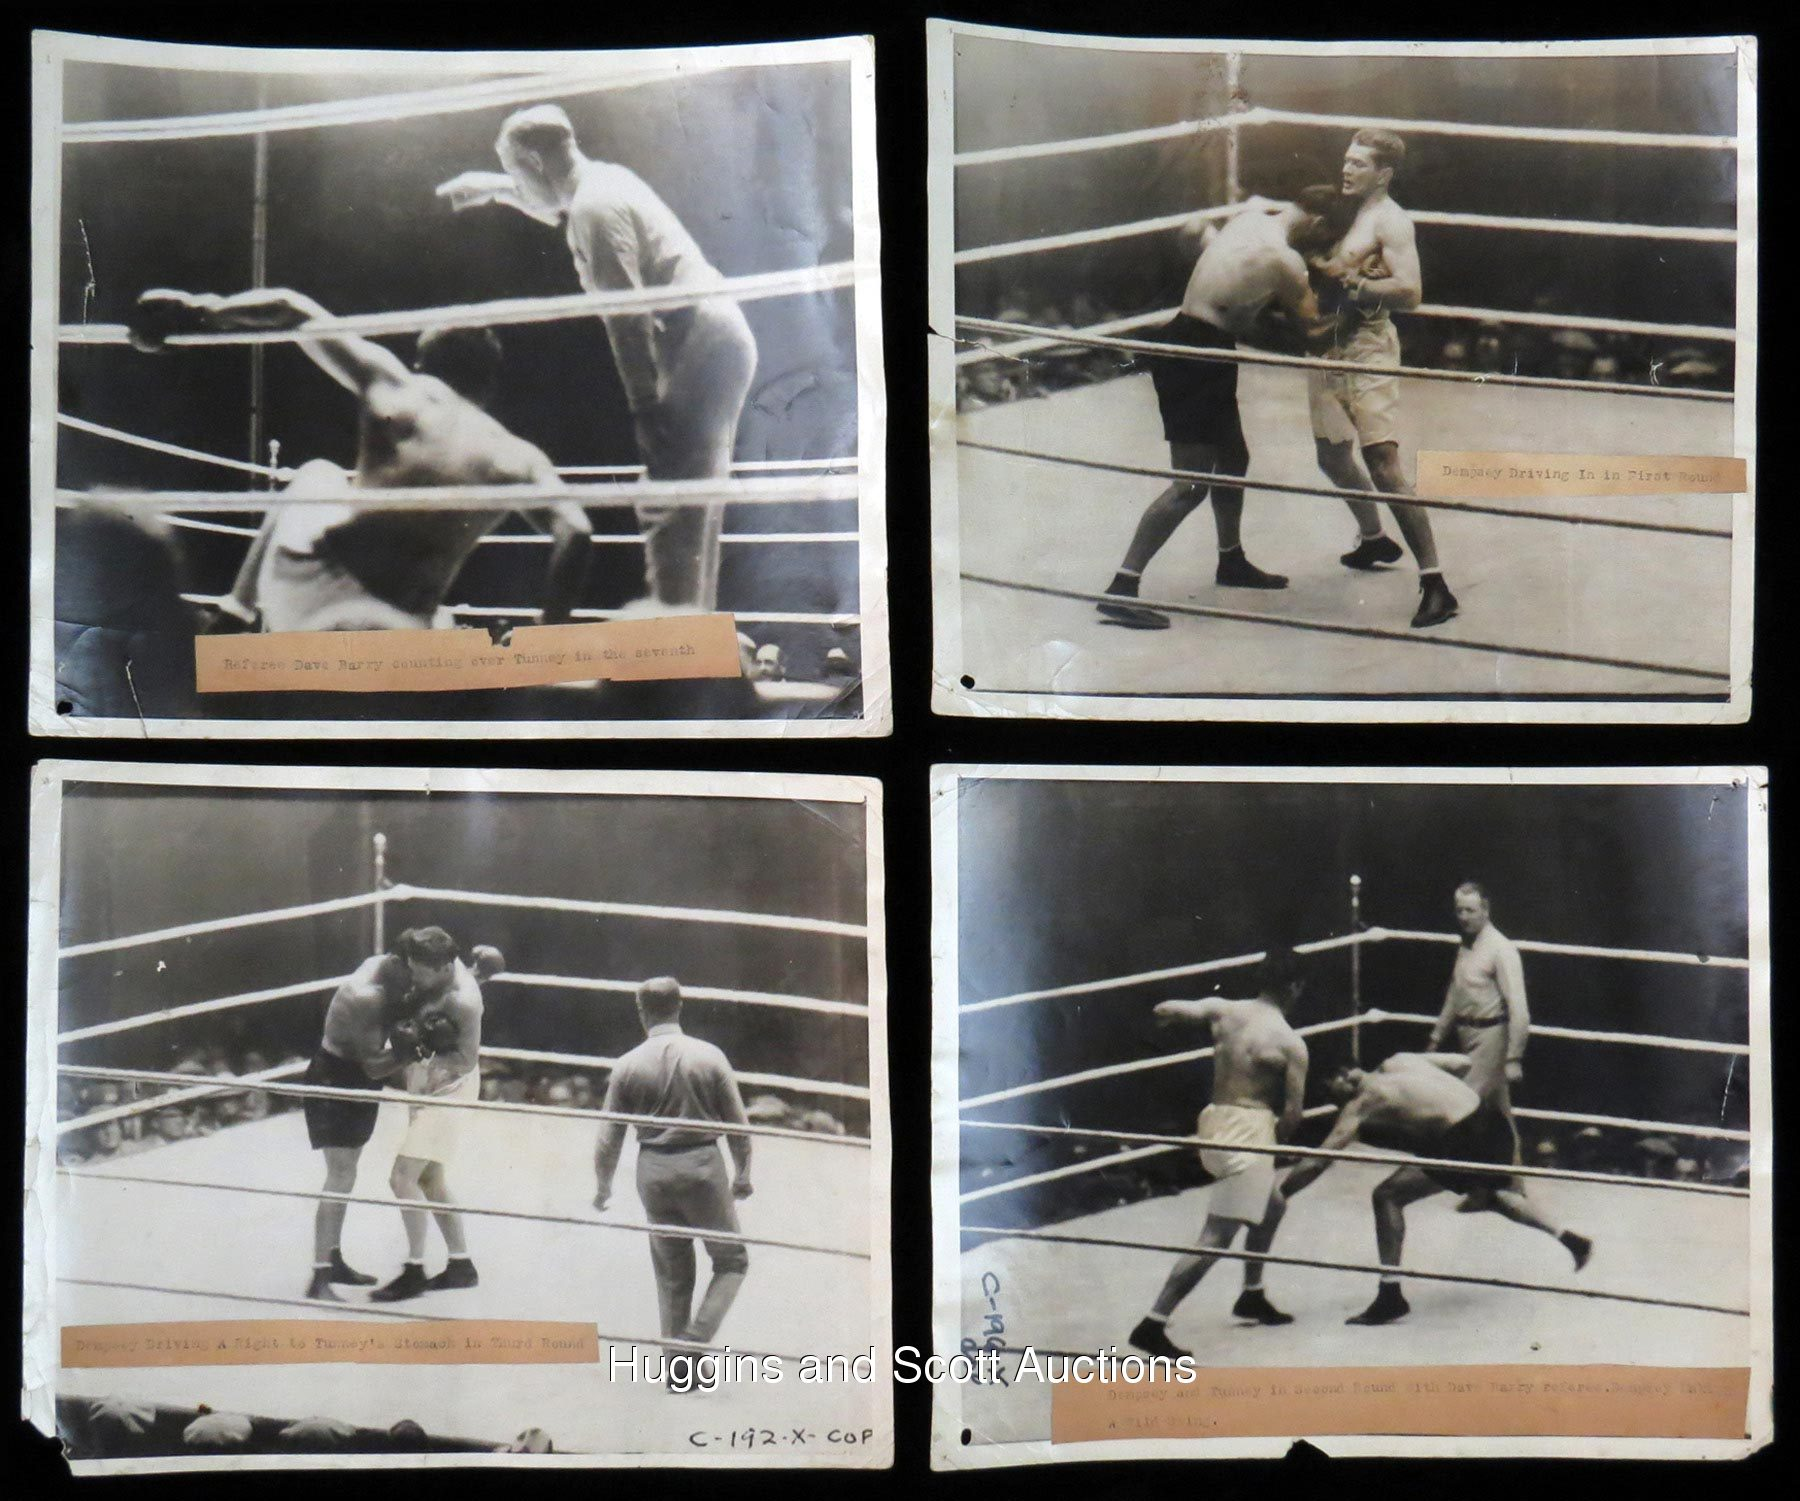 Dempsey vs. Tunney II in 1927 (CLICK ON PHOTO TO VIEW FIGHT CLIP)